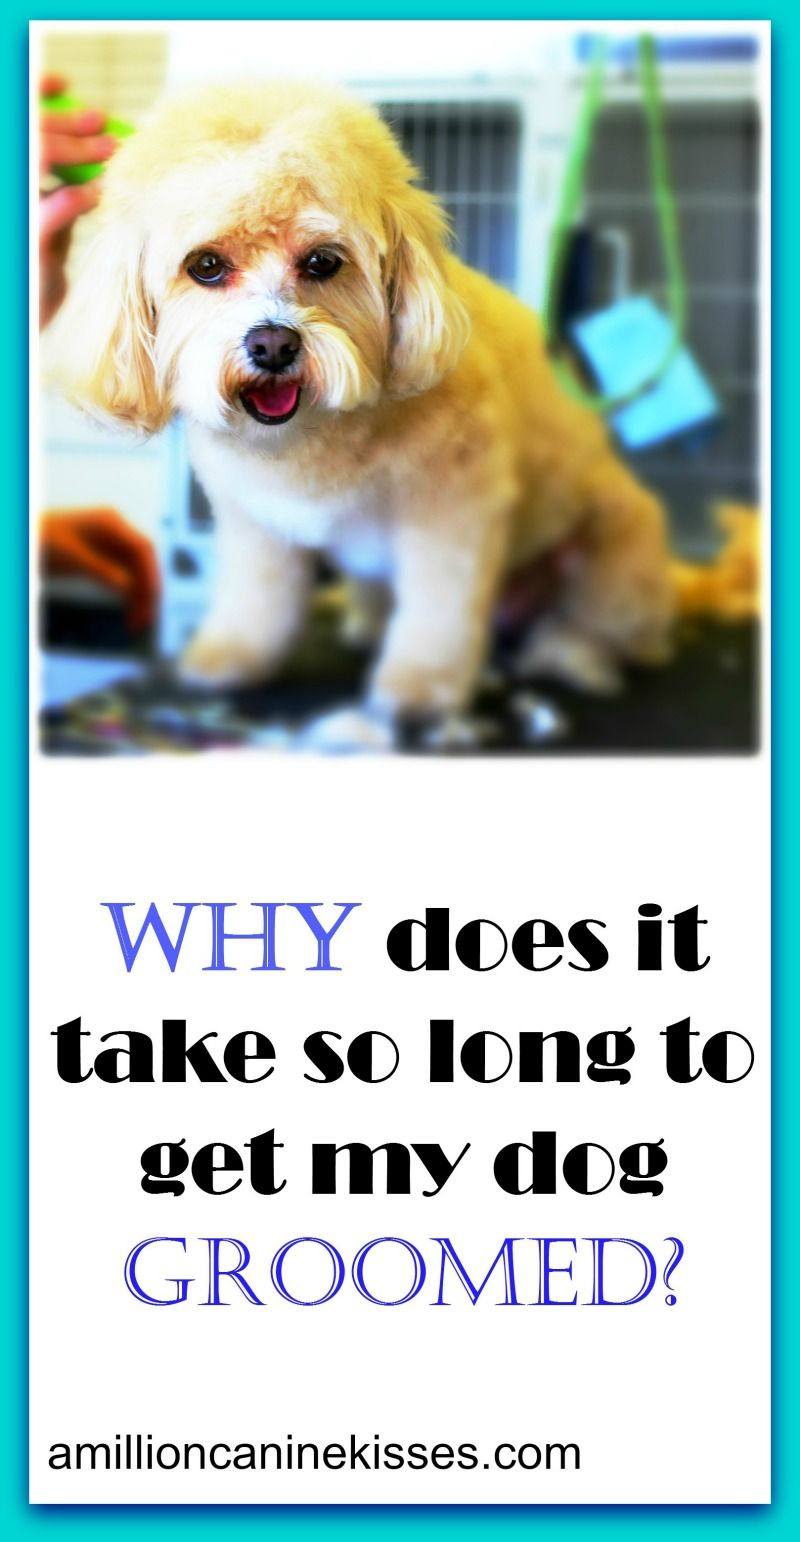 Puppy Love Grooming Hours Ideas